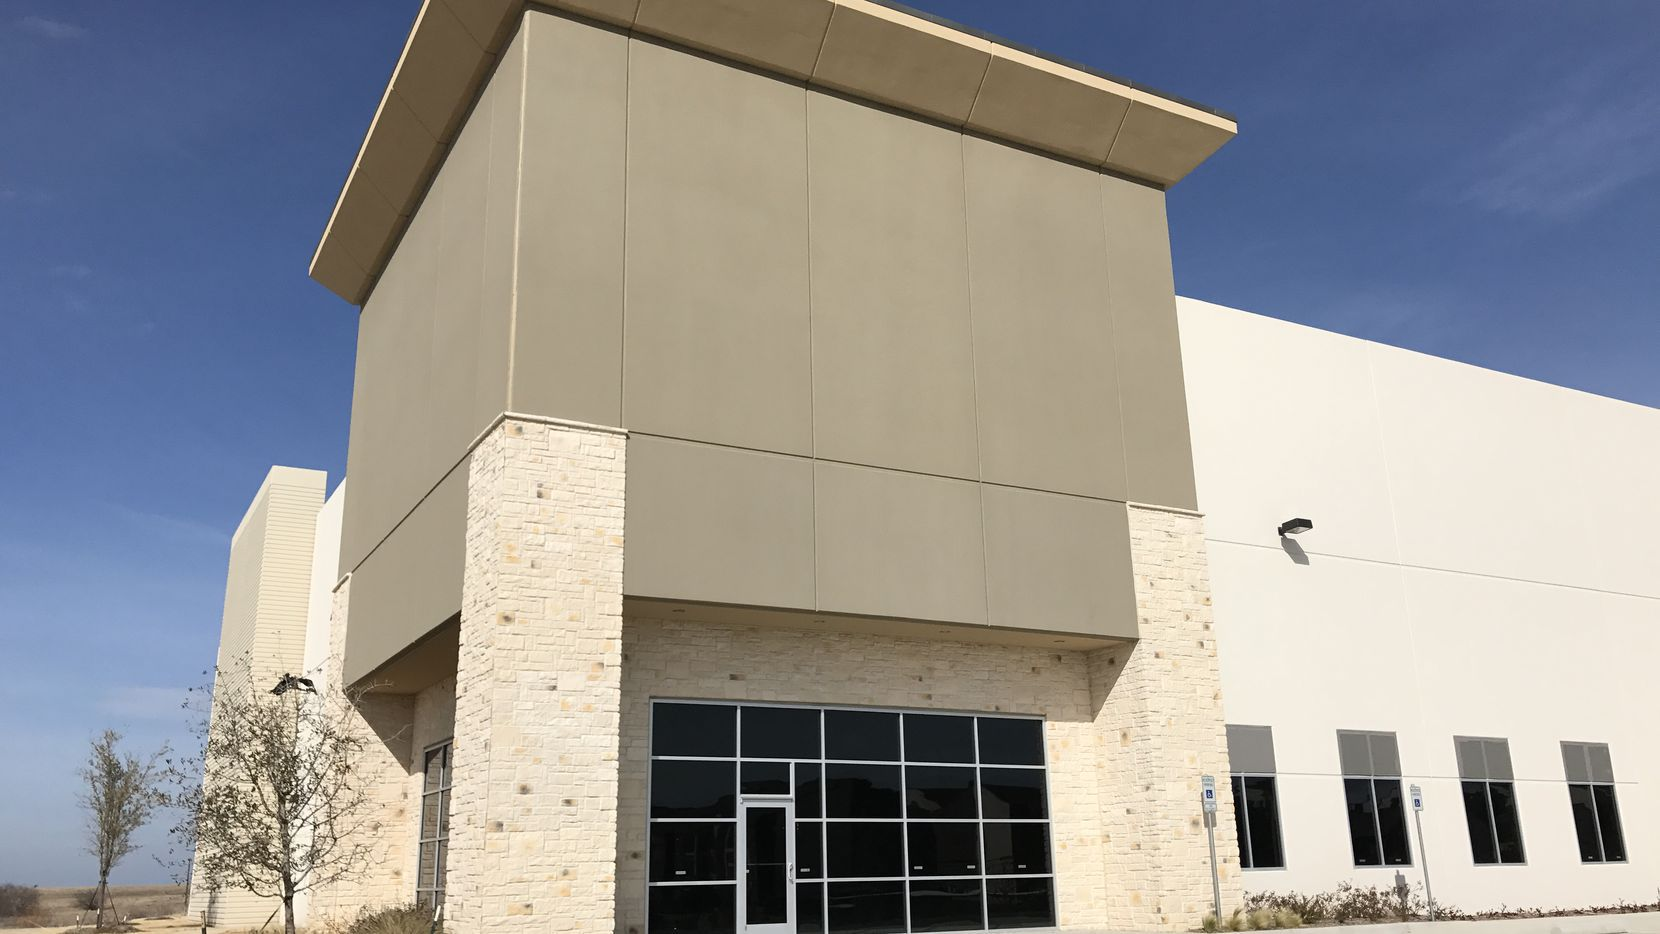 DFW East Logistics Center is near State Highway 161 on the east side of the airport.